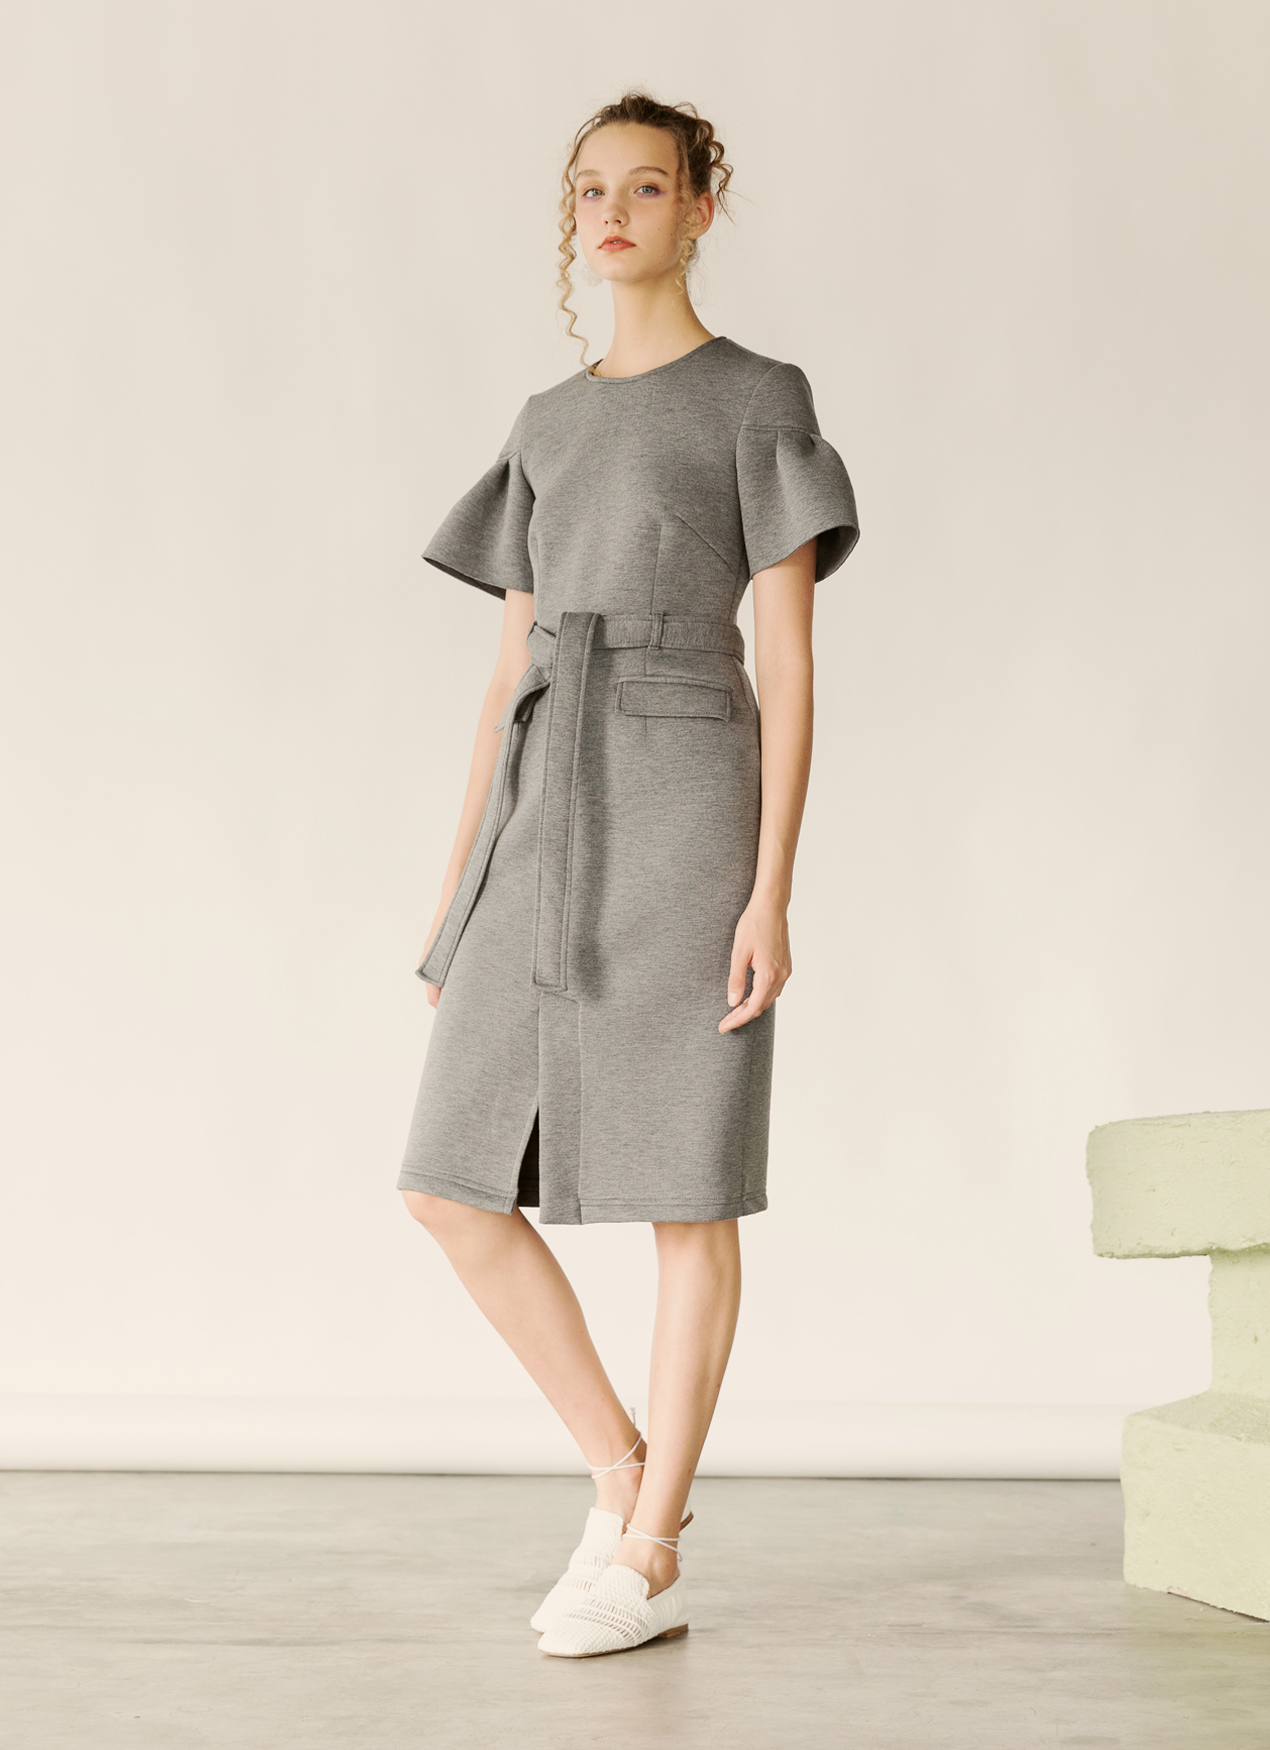 Fabrica Official Rowan Dress - Gray